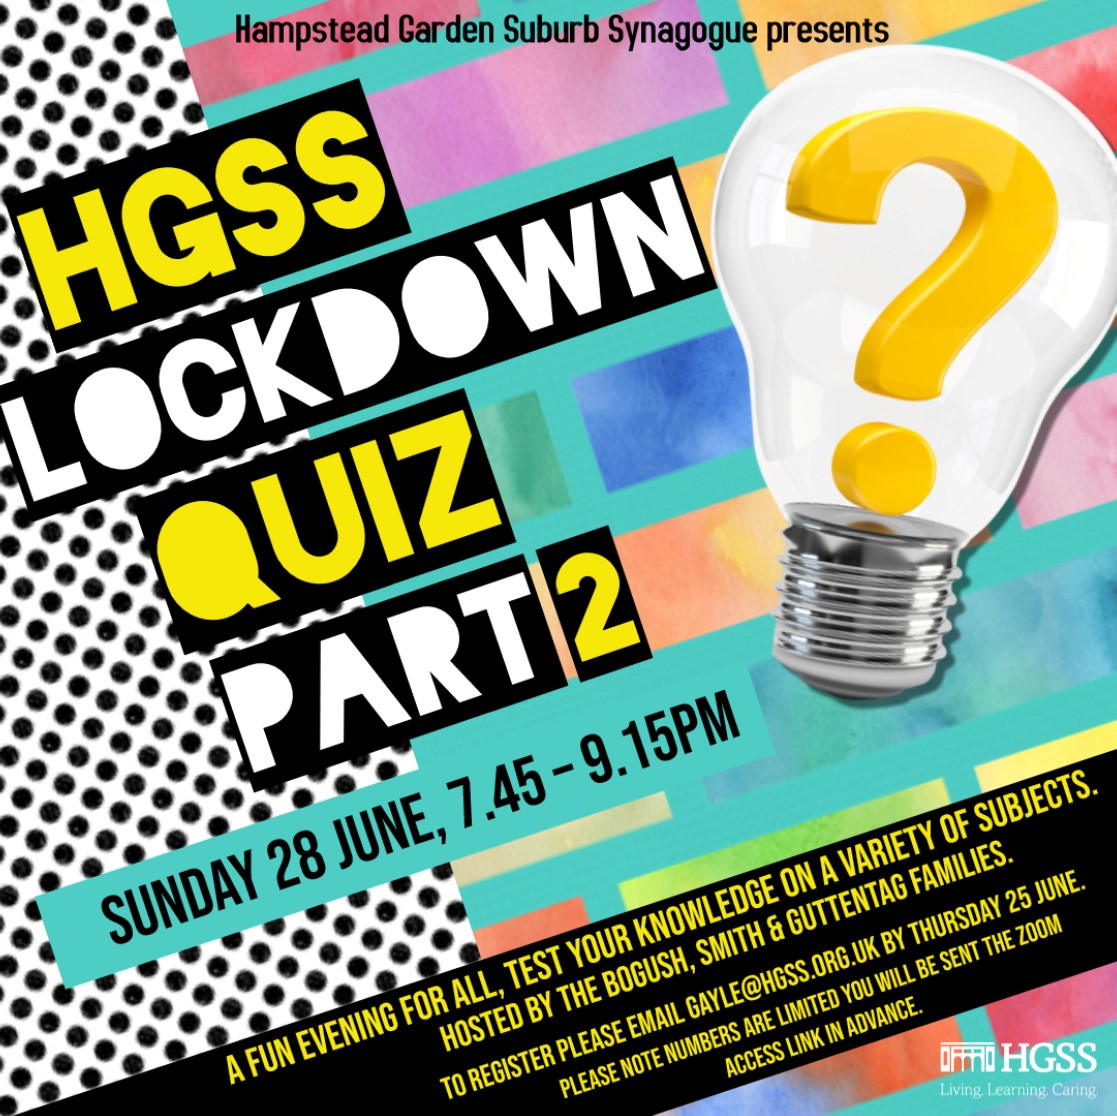 HGSS Lockdown Quiz part 2 @ Online (Contact Gayle for link)